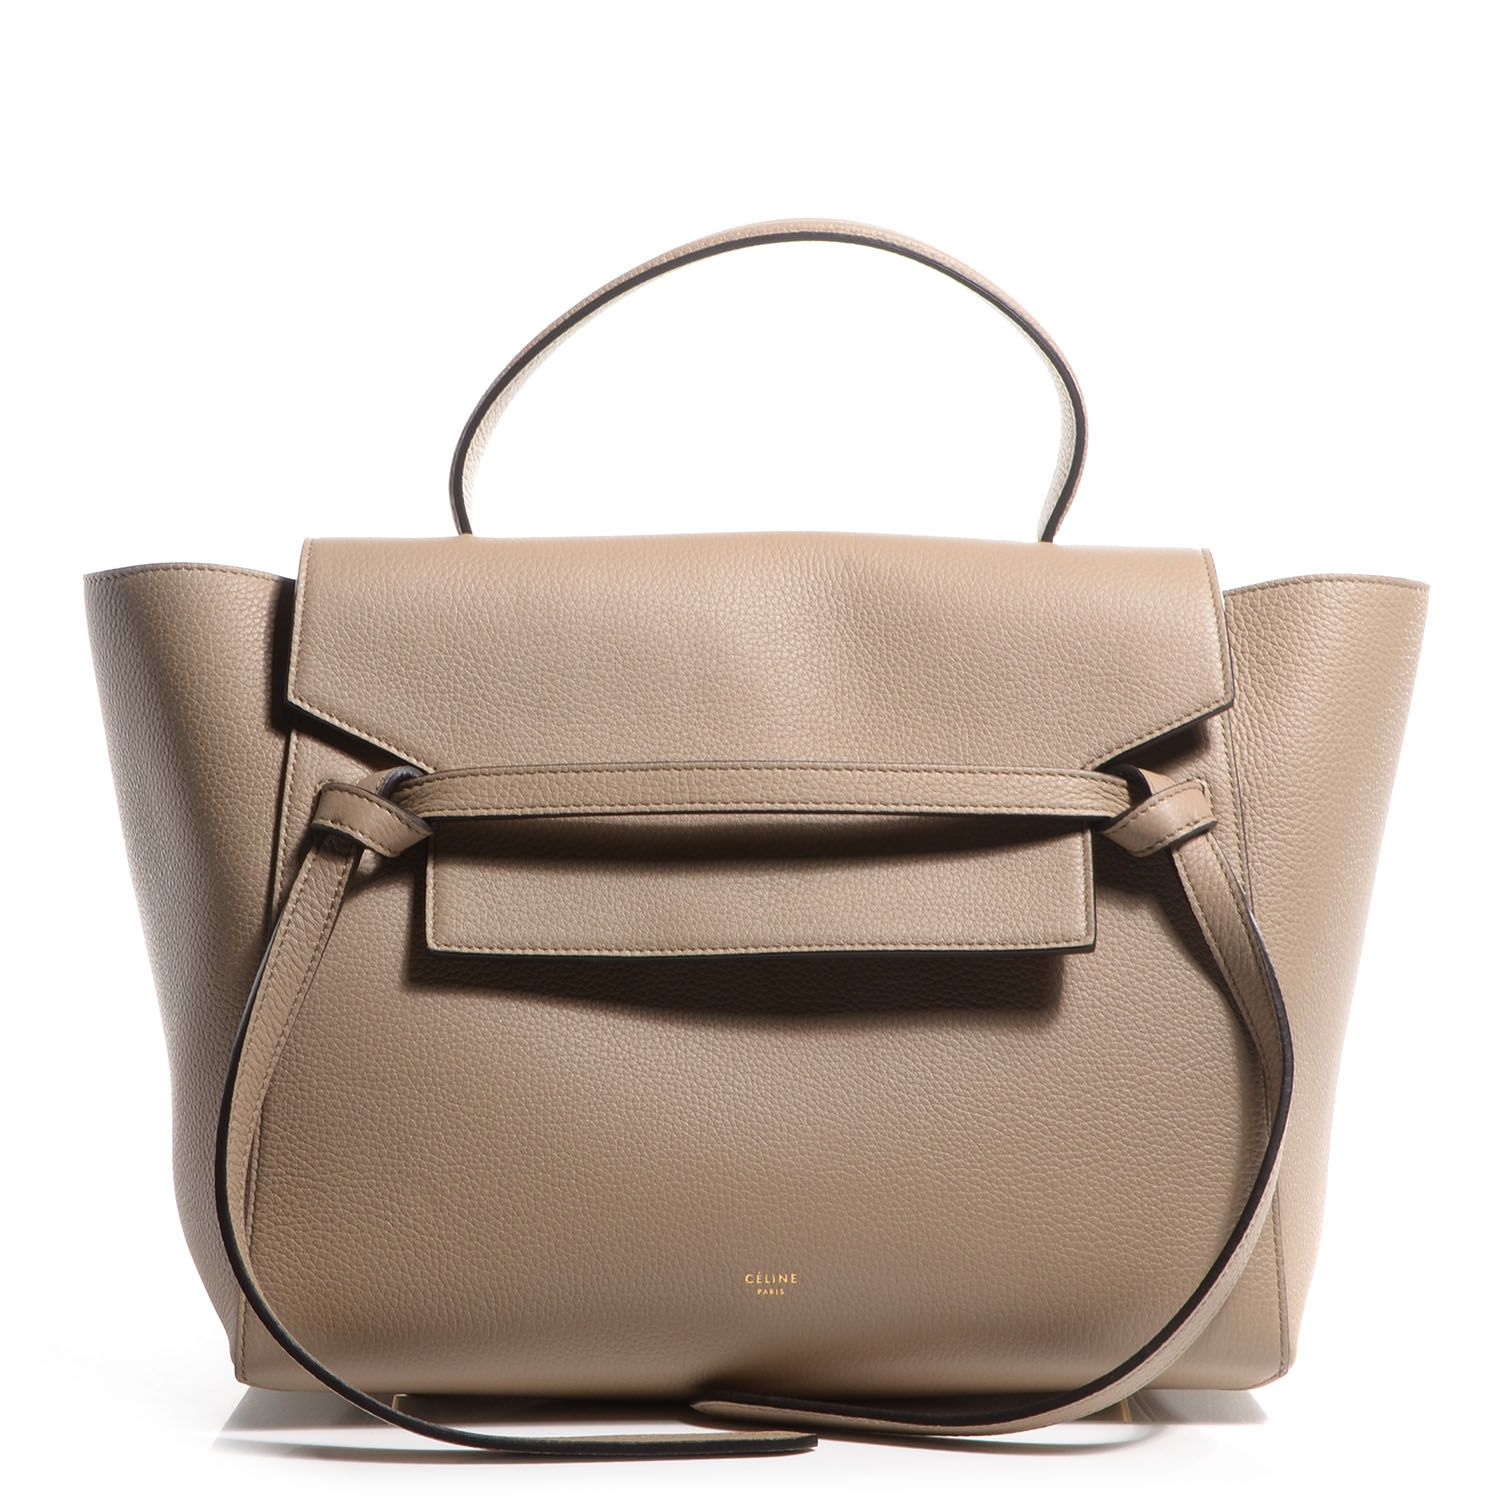 7b97b885f951e This is an authentic CELINE Drummed Calfskin Mini Belt Bag in Dune. This  chic tote